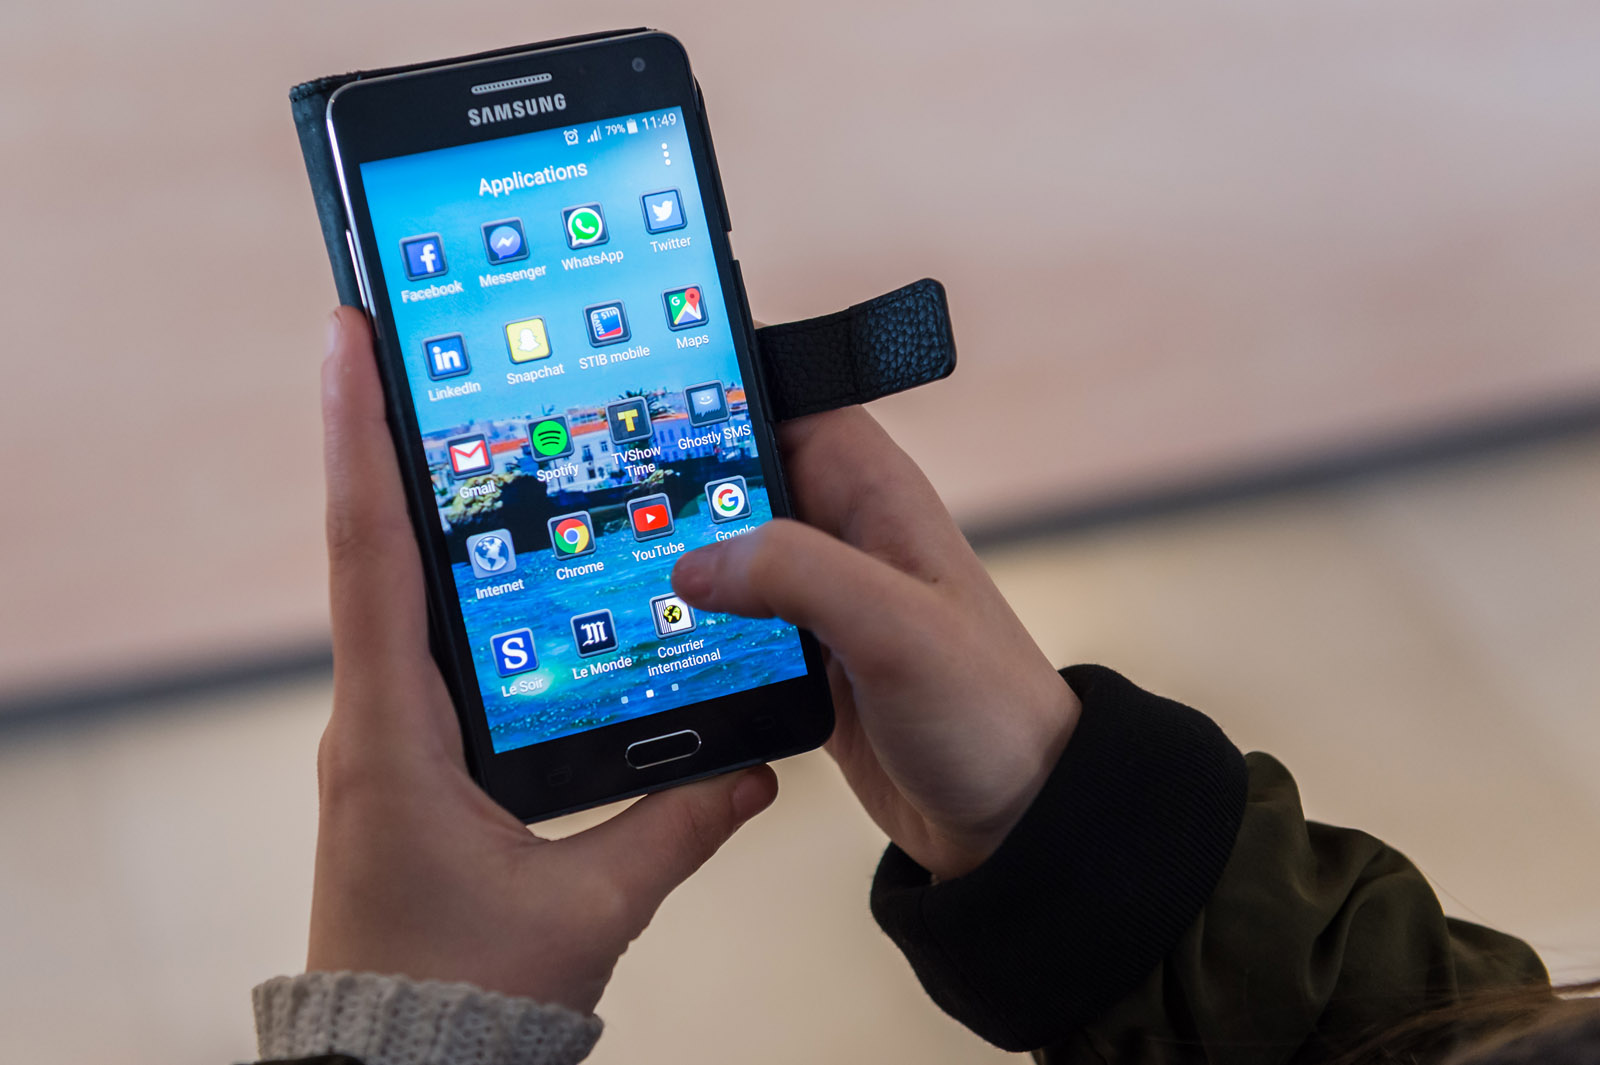 A woman uses an Android smartphone in this April 20, 2016 file photo. Nielsen Holdings reports that FOMO, or the fear of missing out, has become a legitimate phenomenon, especially regarding our smartphones. (AP File Photo/Geert Vanden Wijngaert)